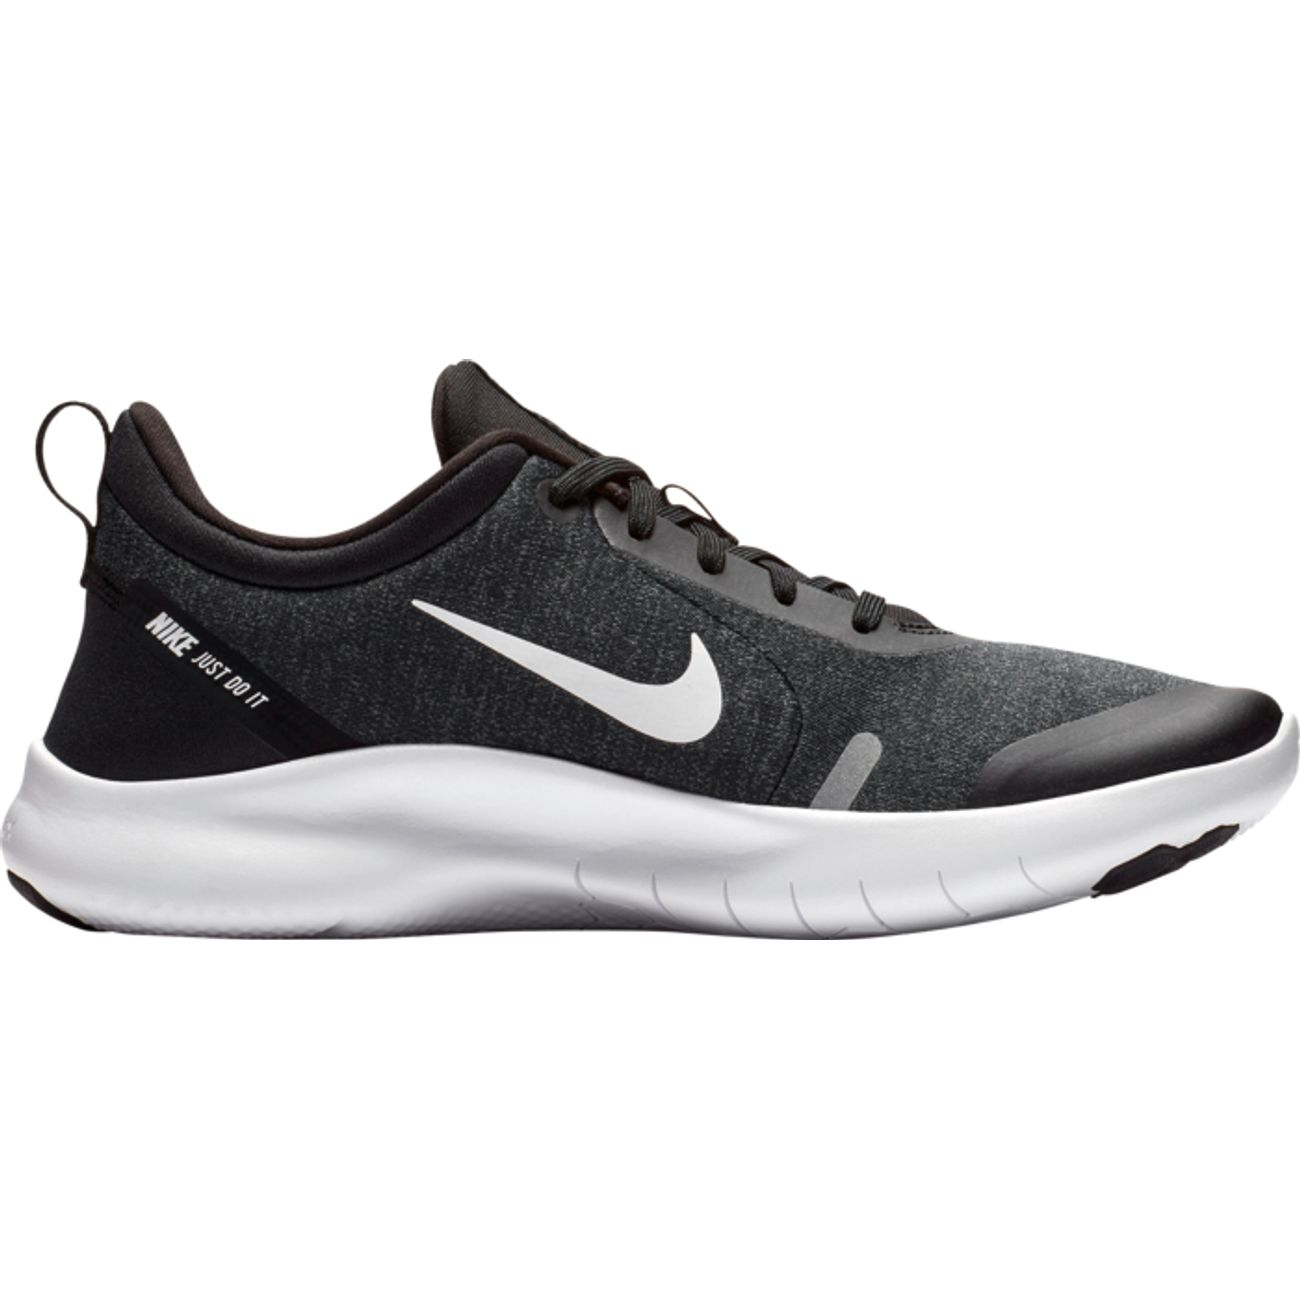 quality design b1698 00998 CHAUSSURES BASSES running femme NIKE FLEX EXPERIENCE RN 8, ...